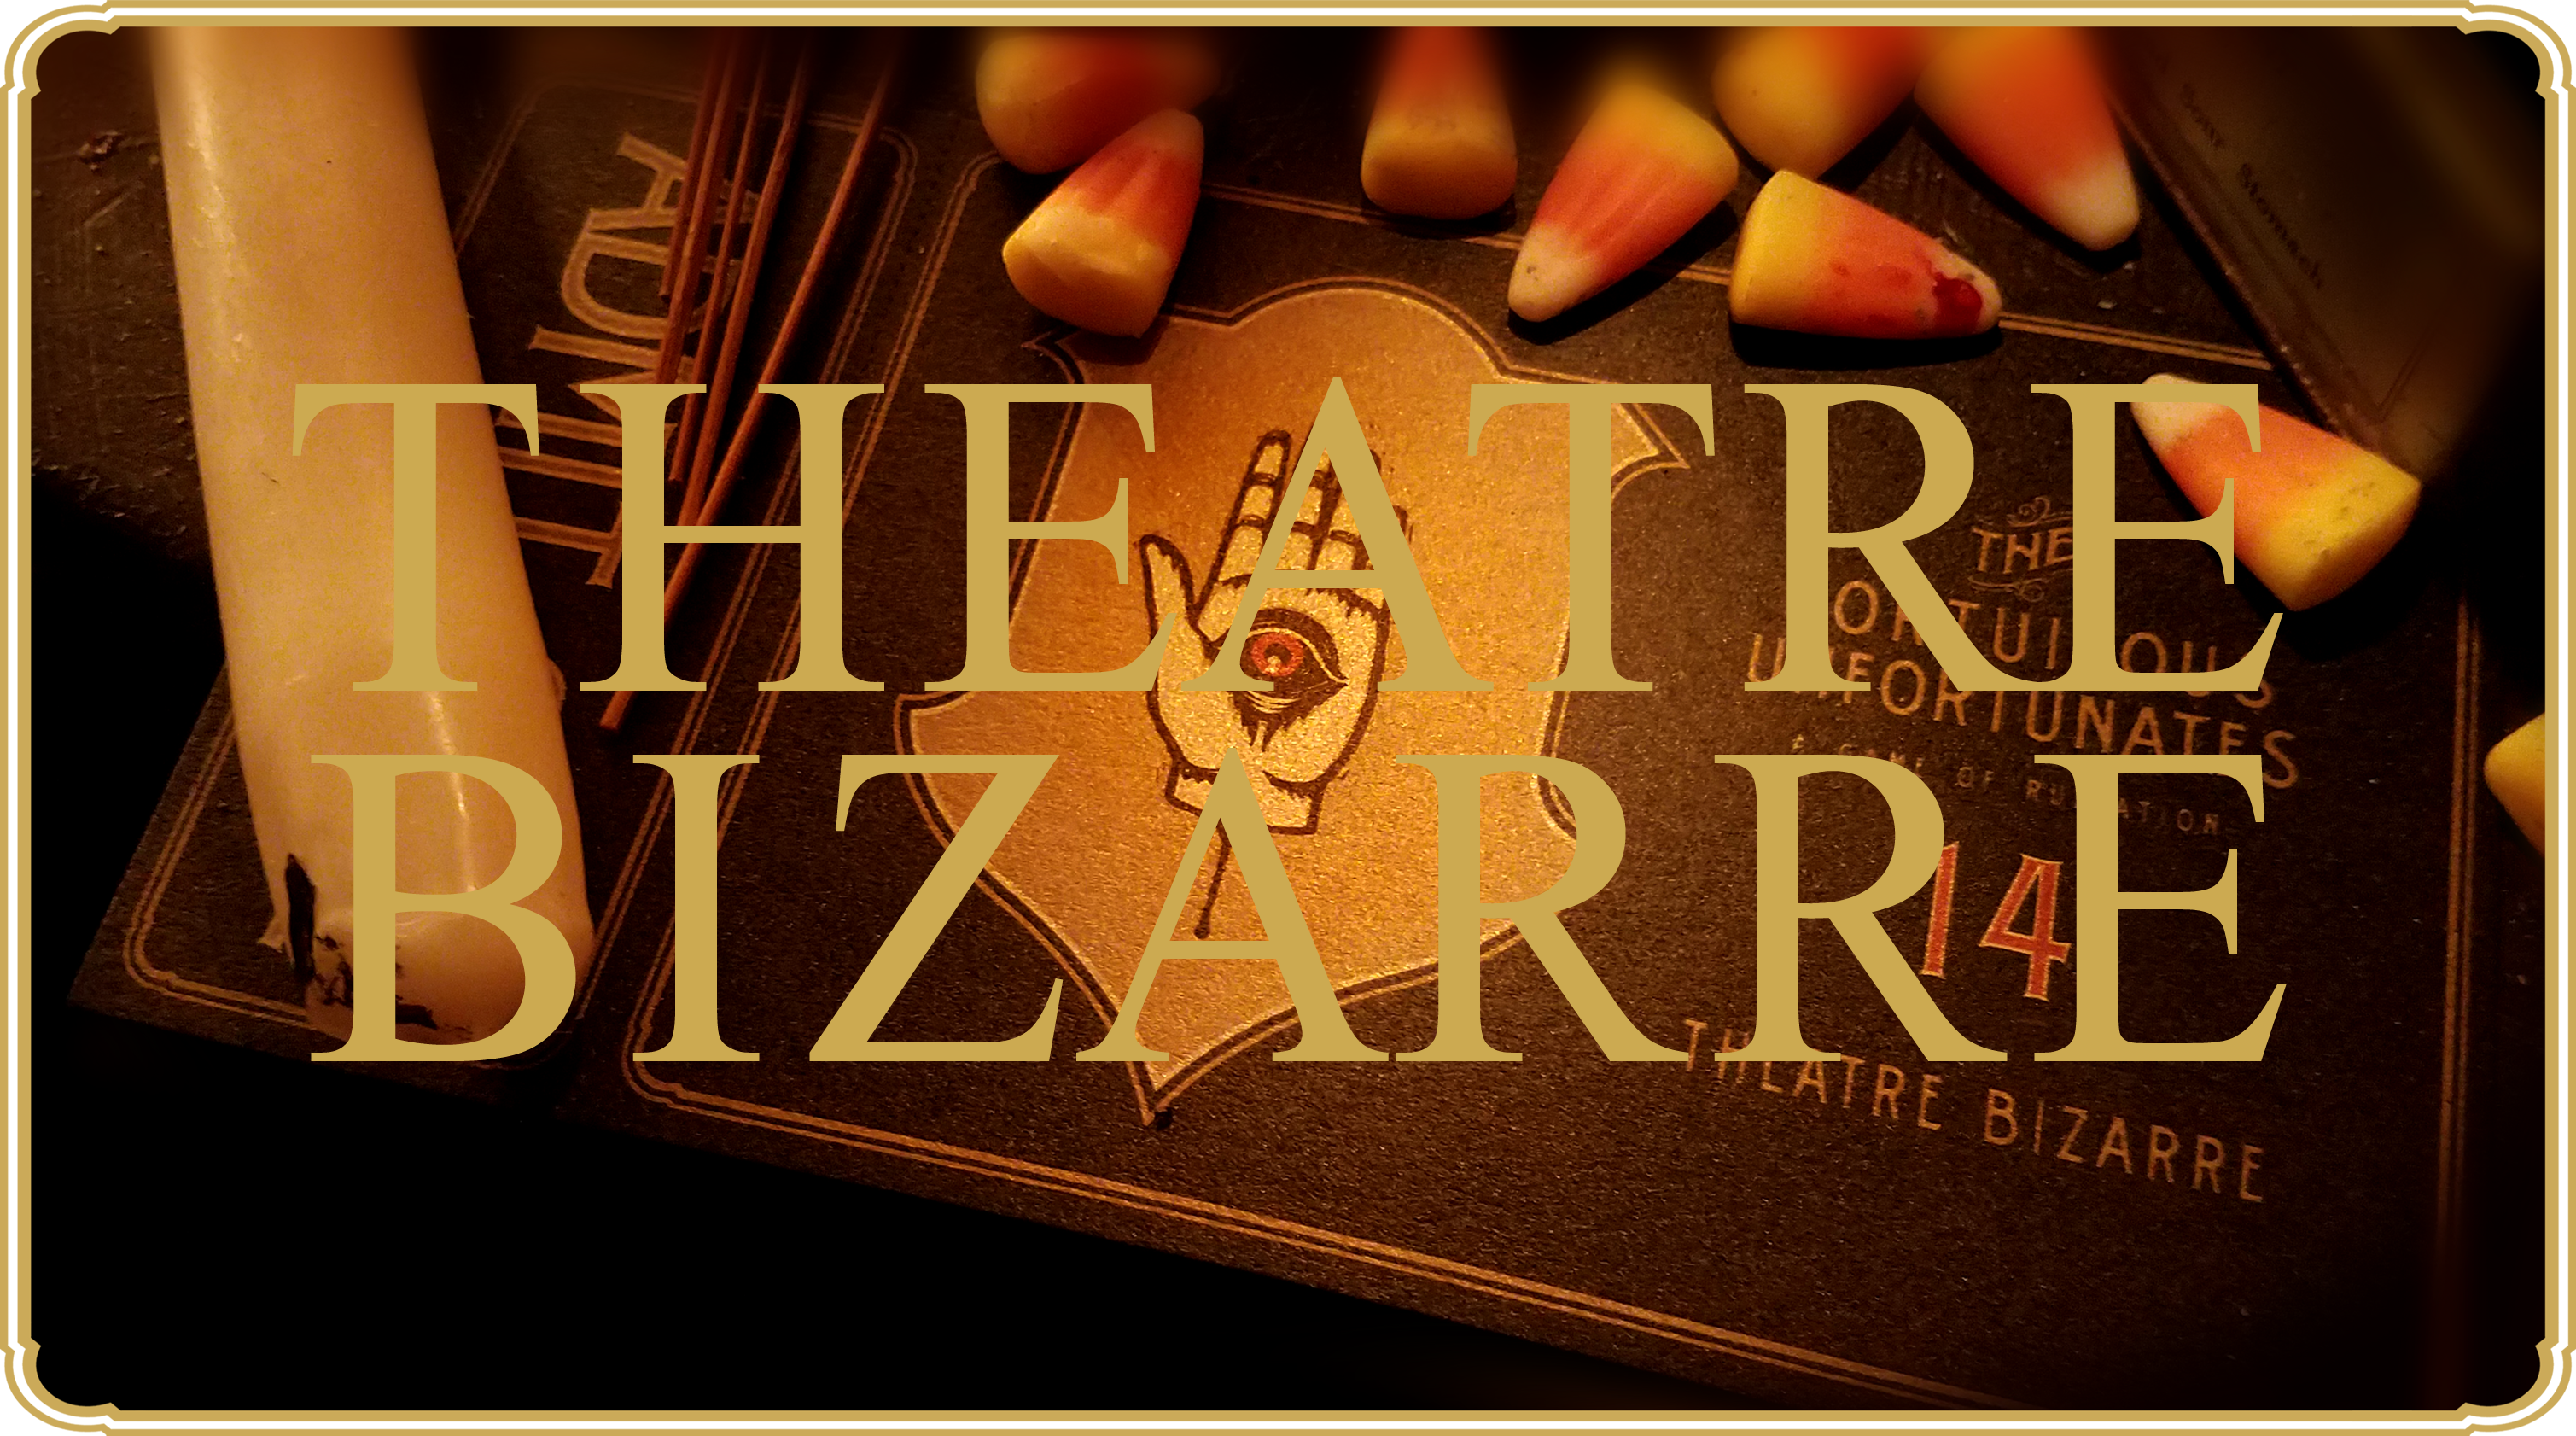 Ticket to Theatre Bizarre - October 14, 2017 x66622107